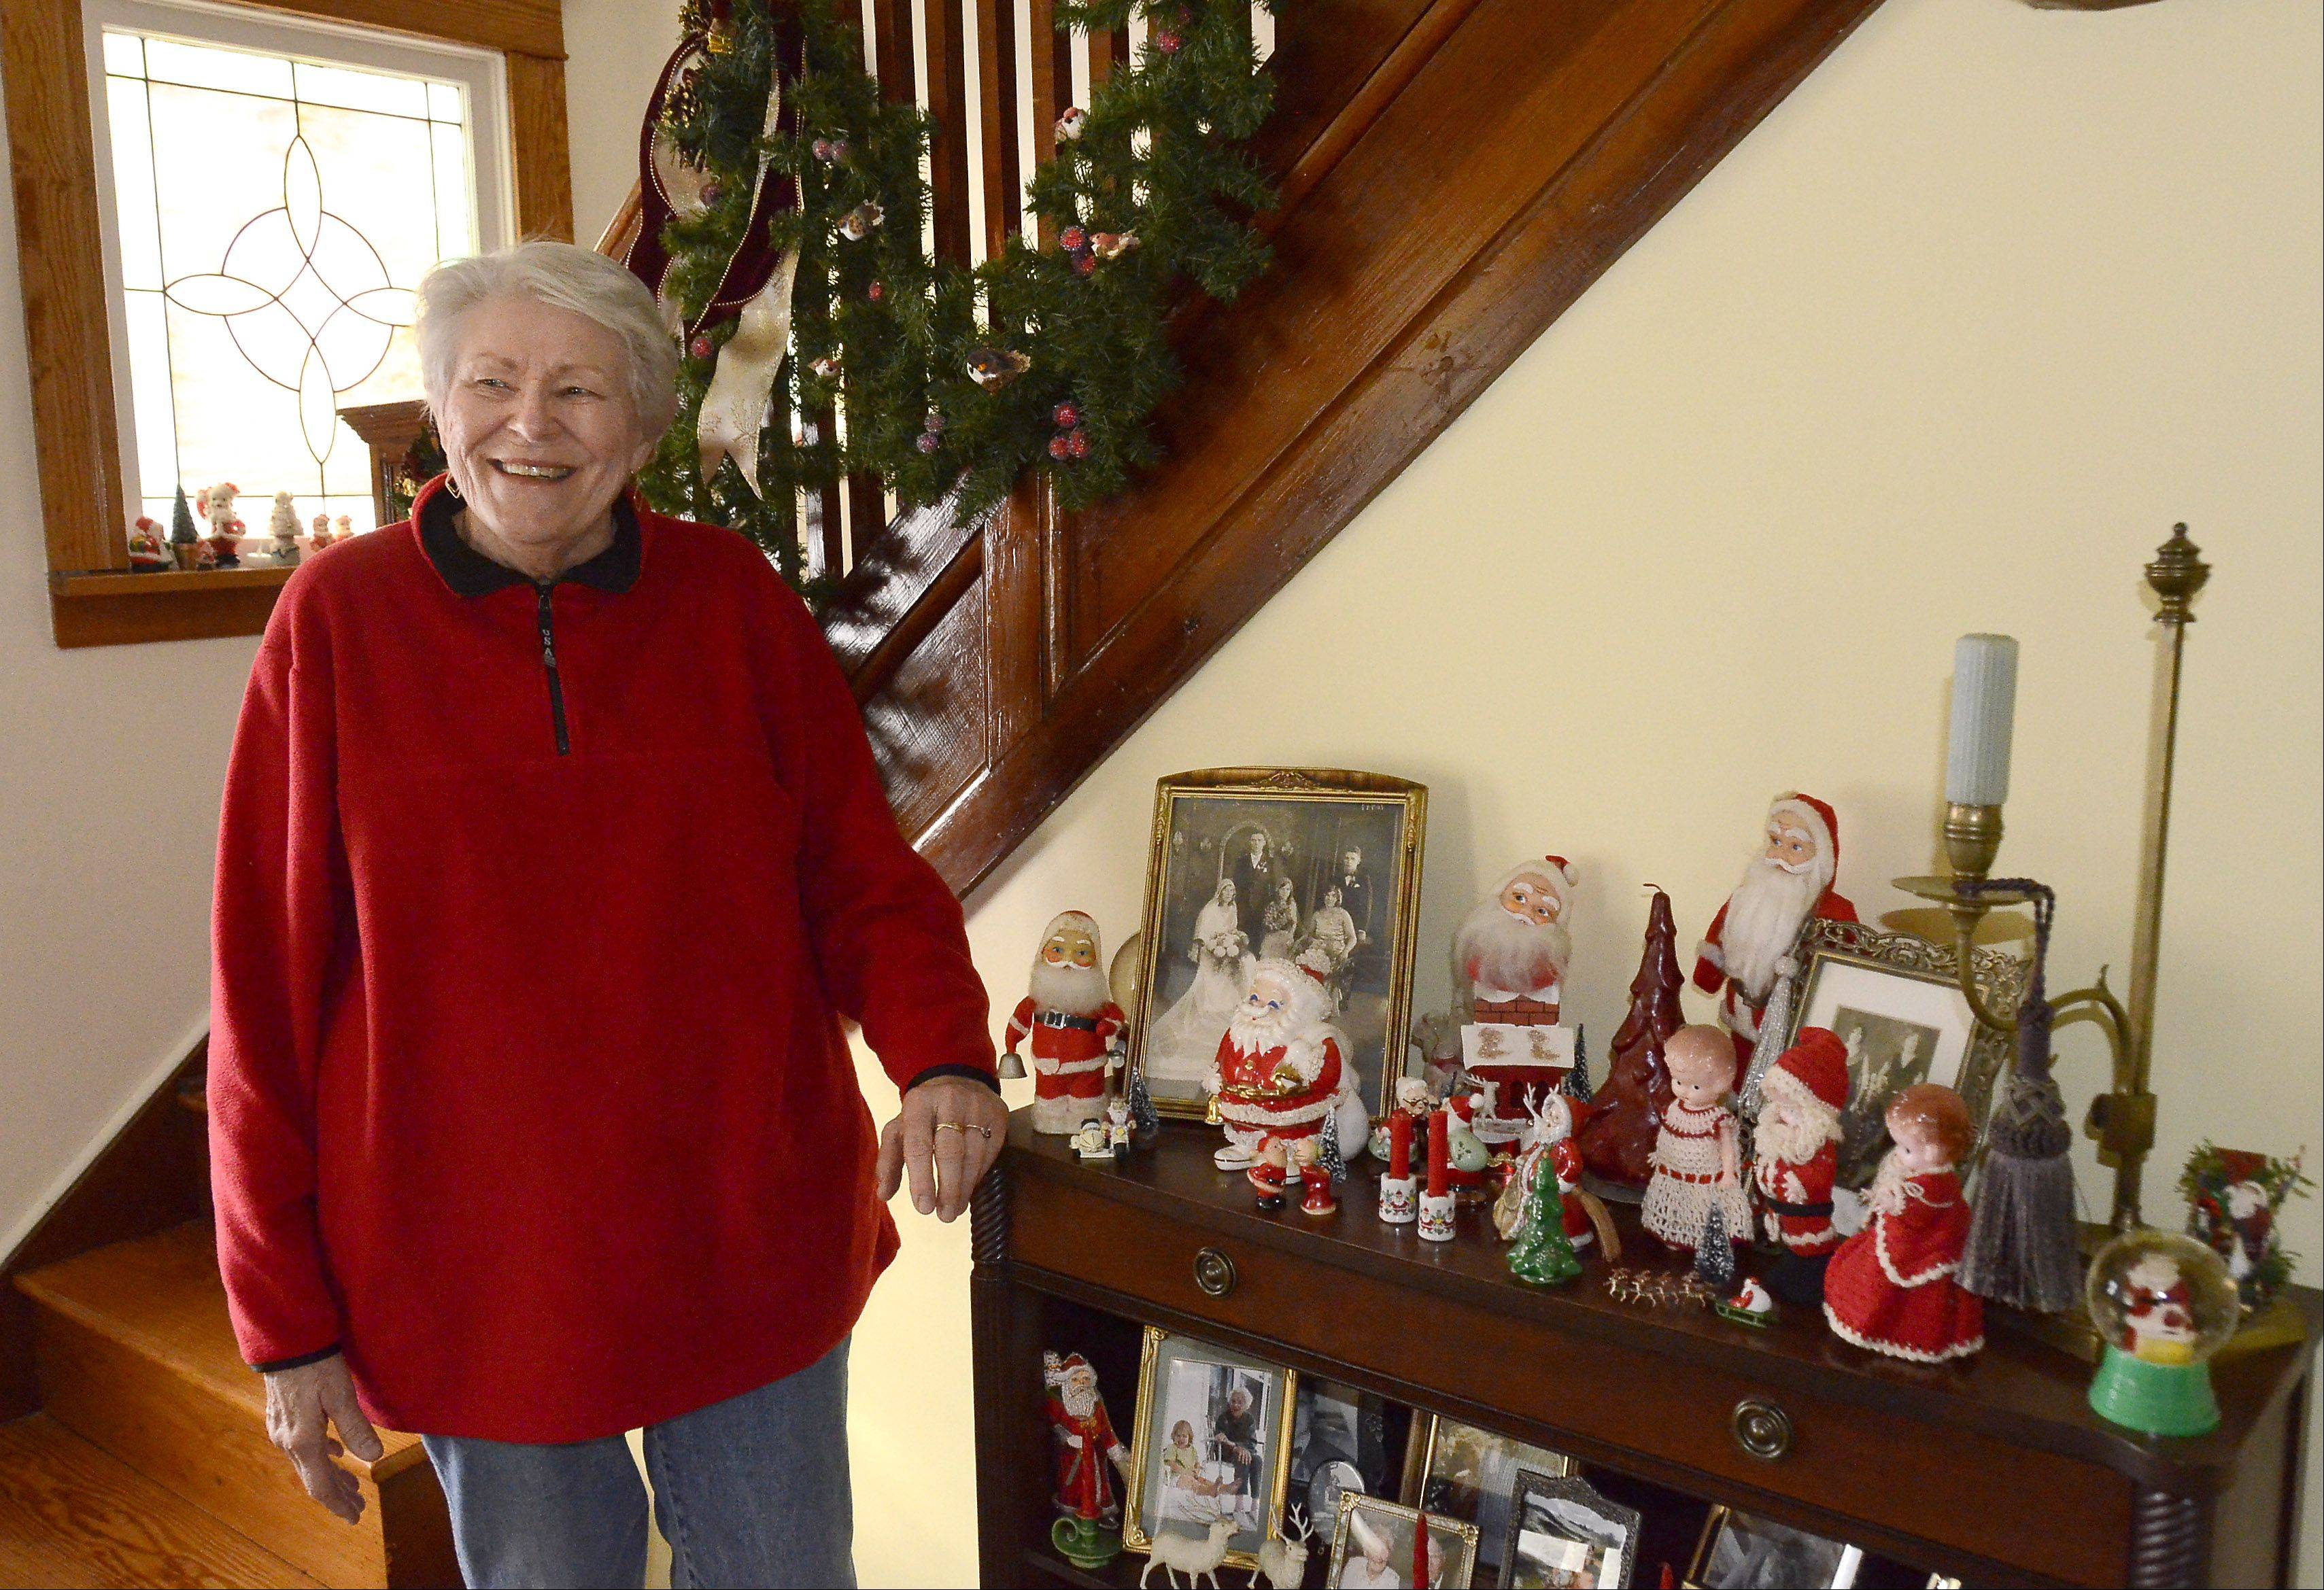 Owner Rita Waters and family will open their home for the Mount Prospect Holiday Housewalk.